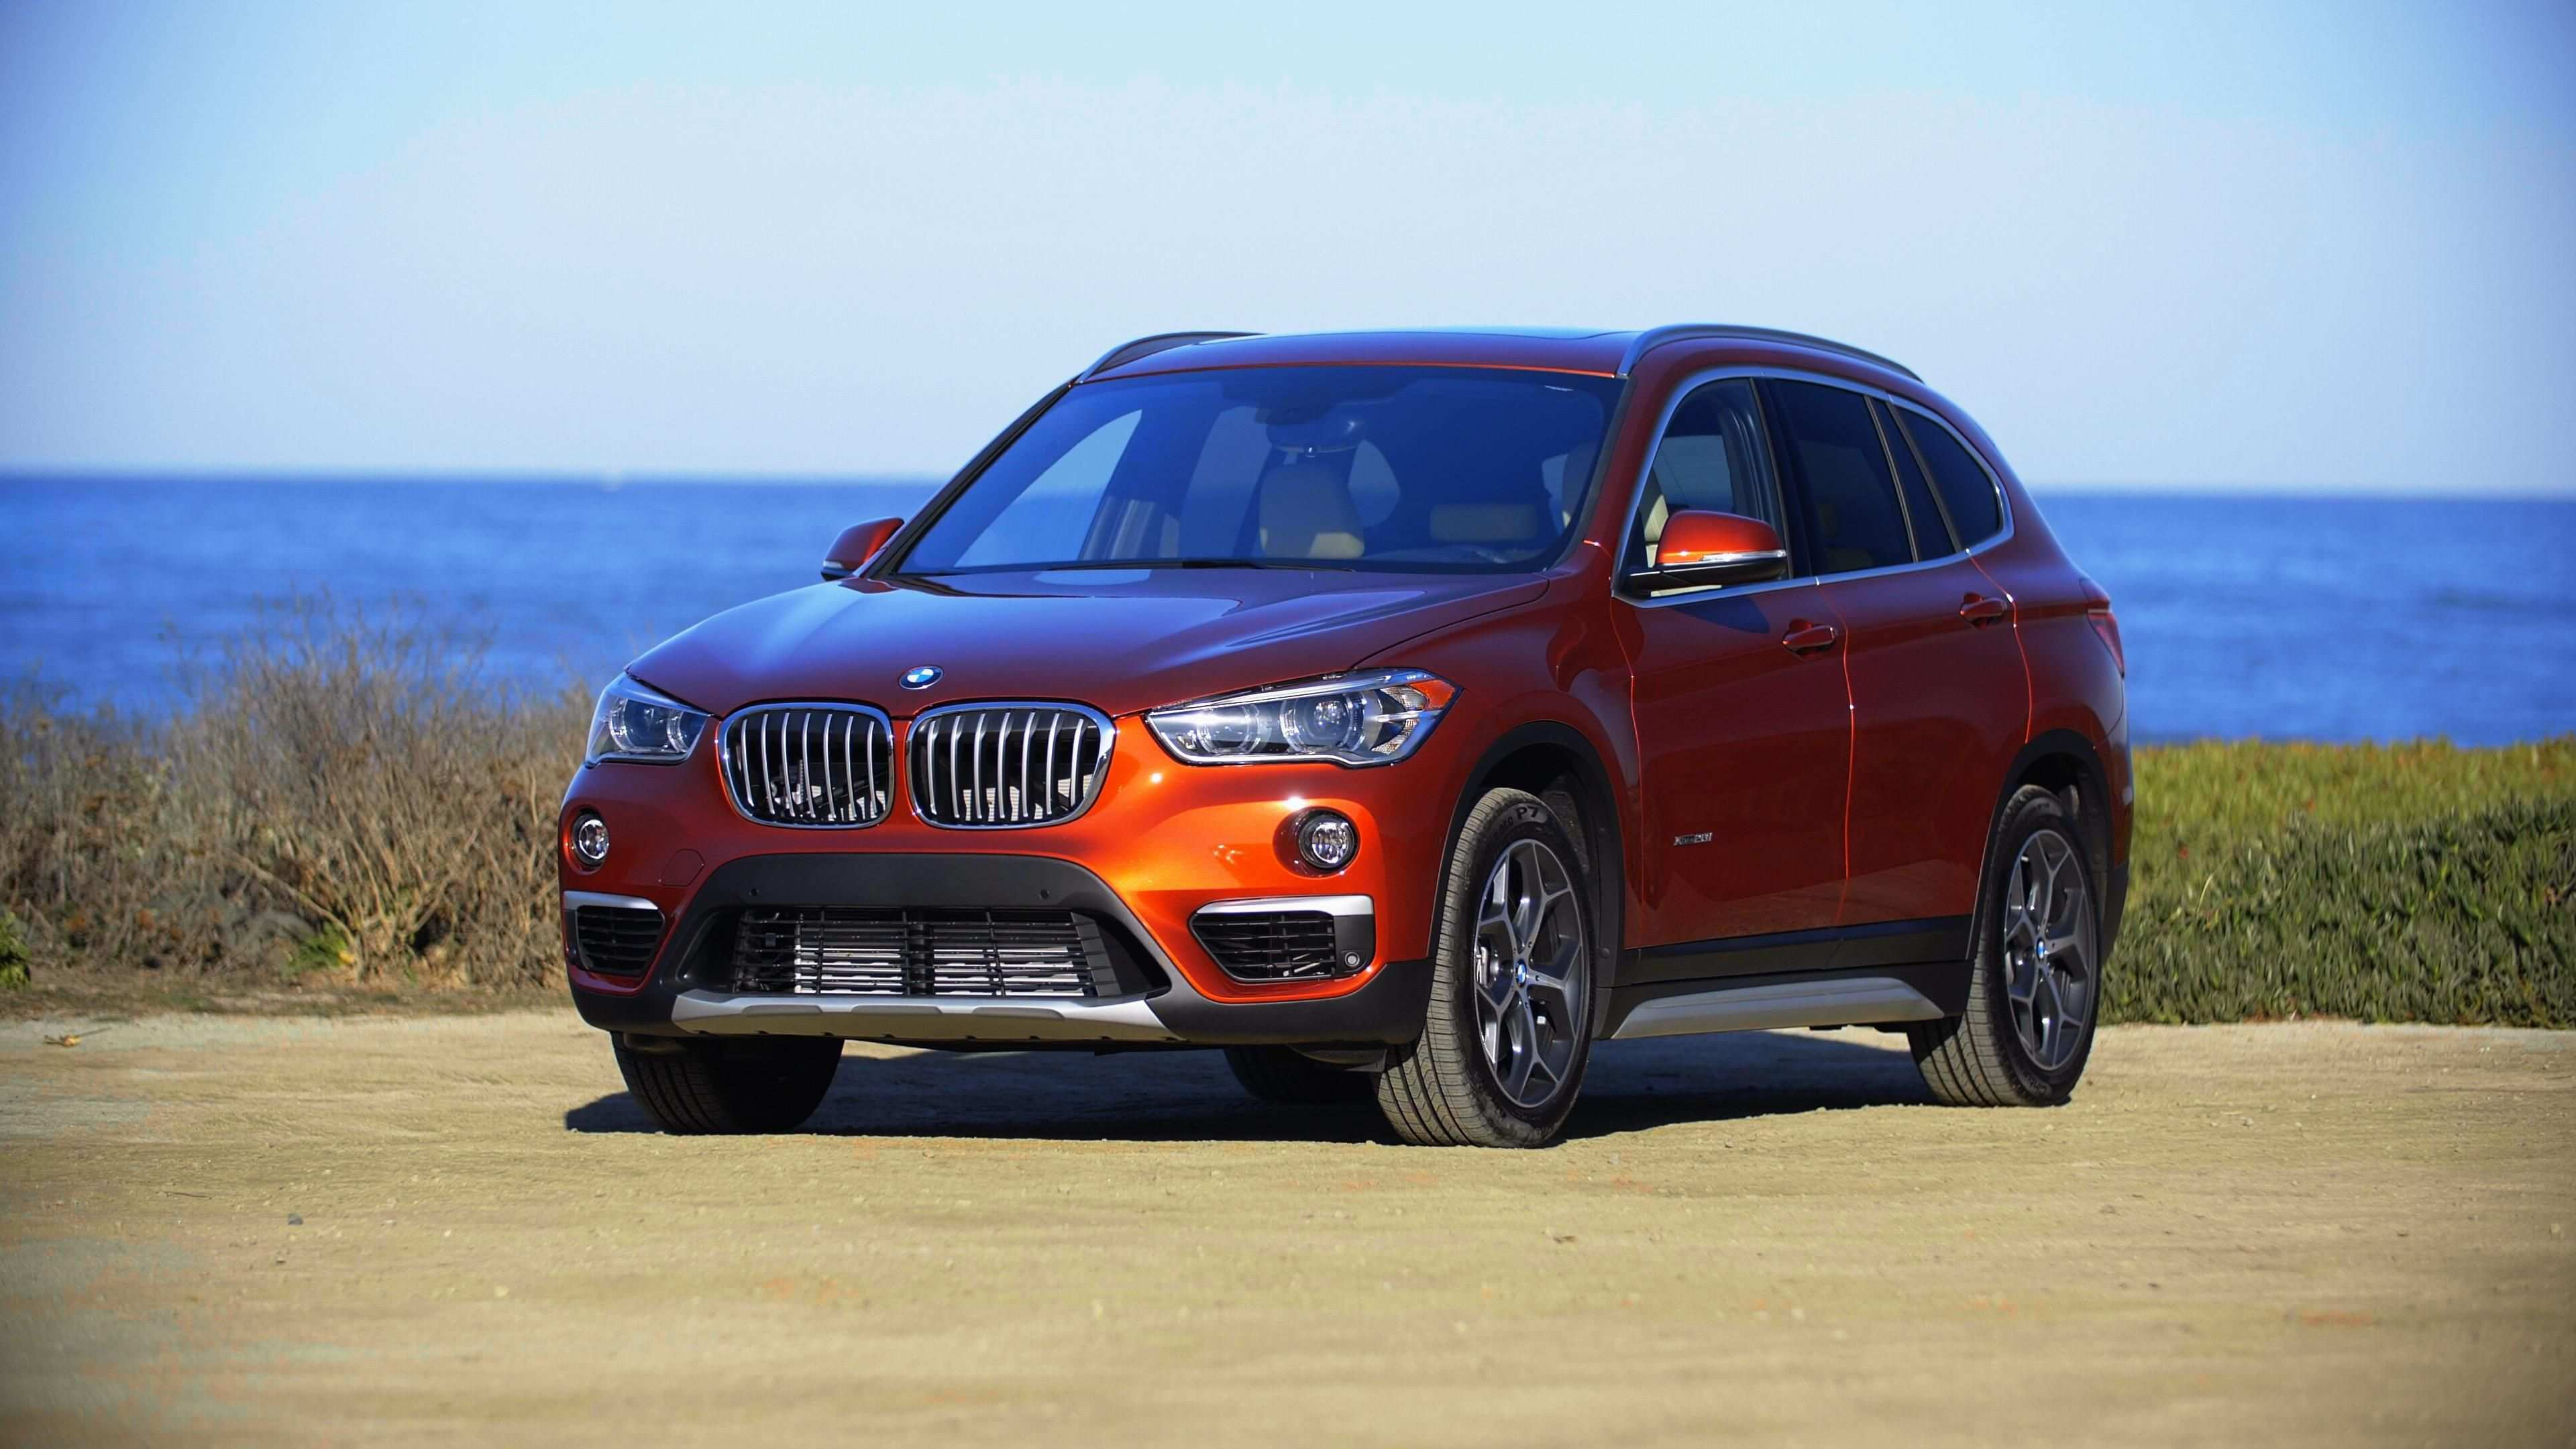 53 Concept of The X1 Bmw 2019 Price And Review Images by The X1 Bmw 2019 Price And Review